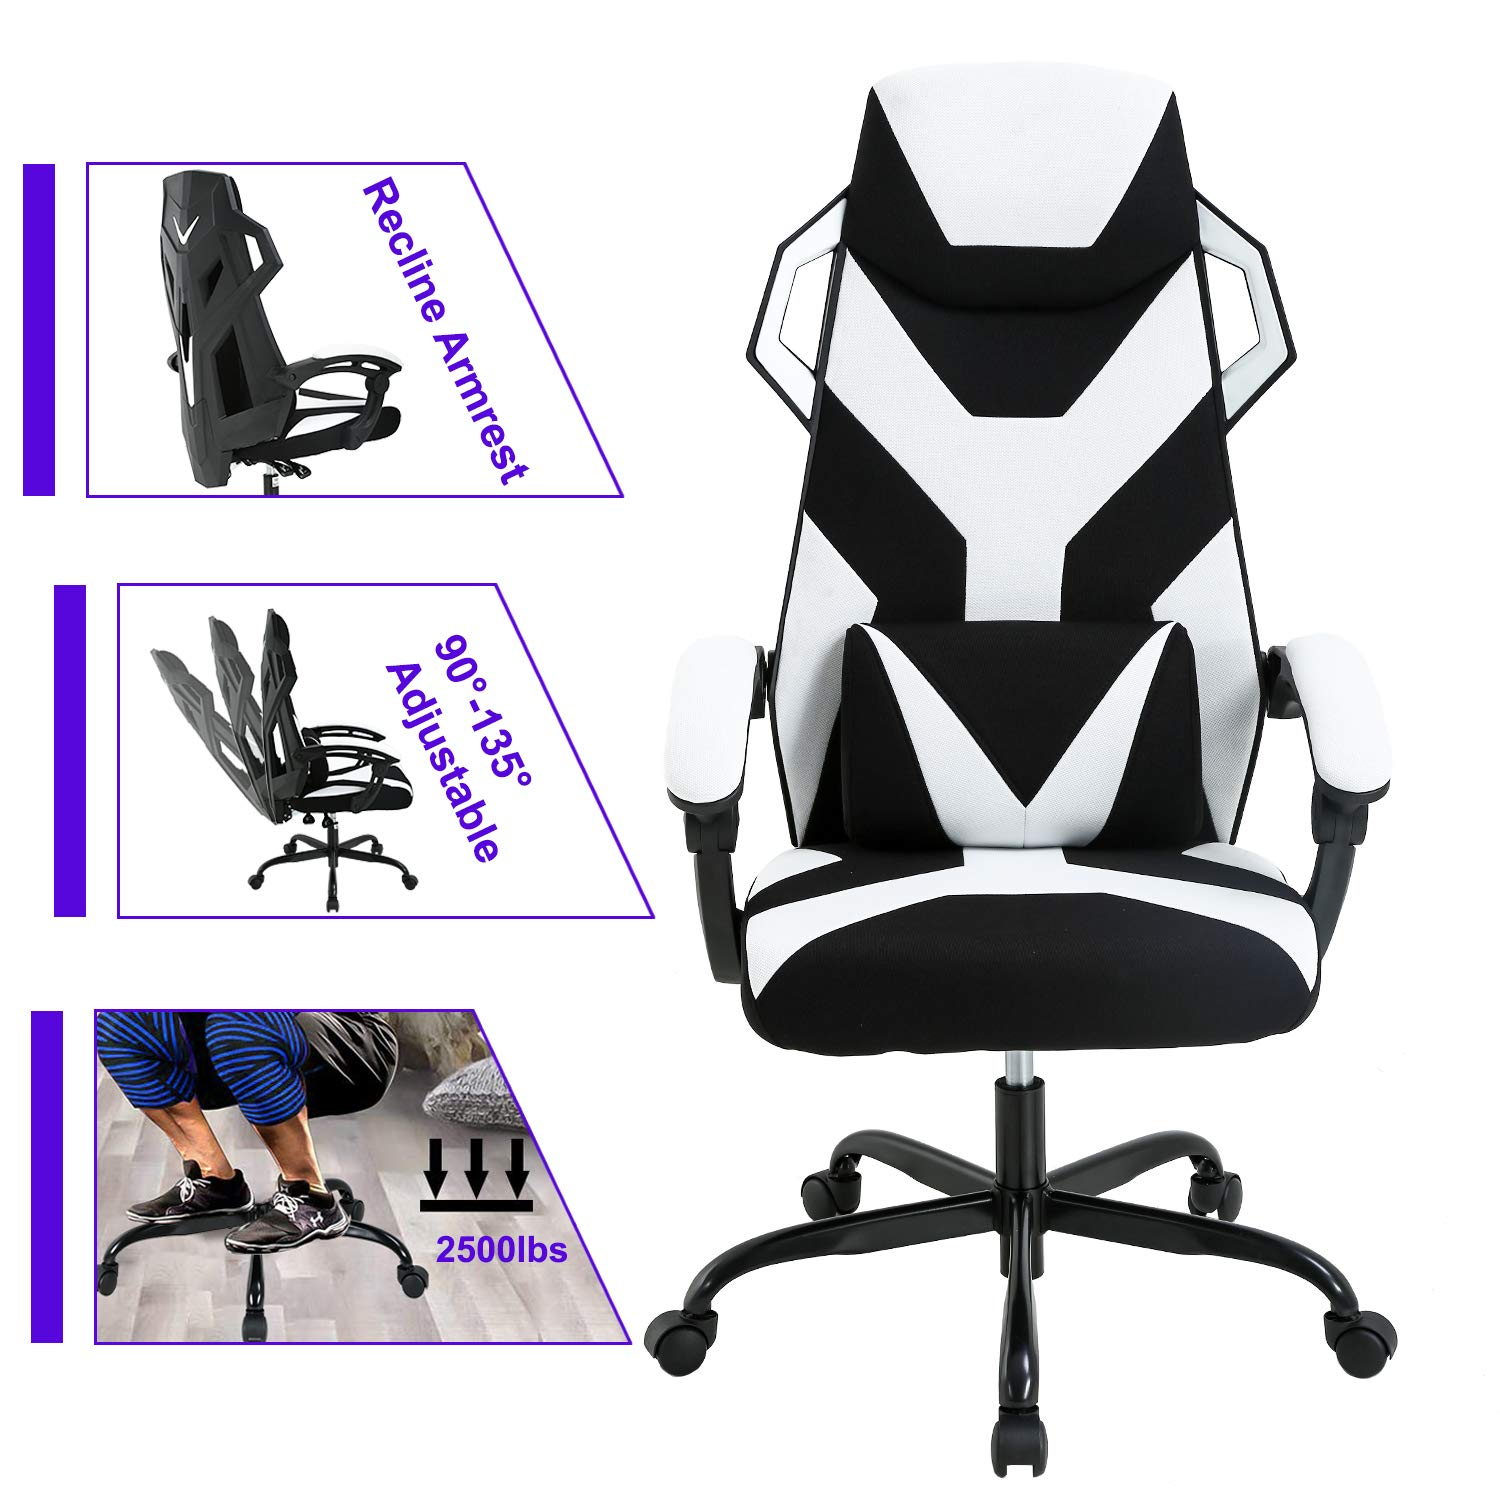 PC Gaming Chair Ergonomic Office Chair Desk Chair Executive Task Computer Chair Back Support Modern Recline Arms Rolling Swivel Chair for Women Men,White by BestOffice